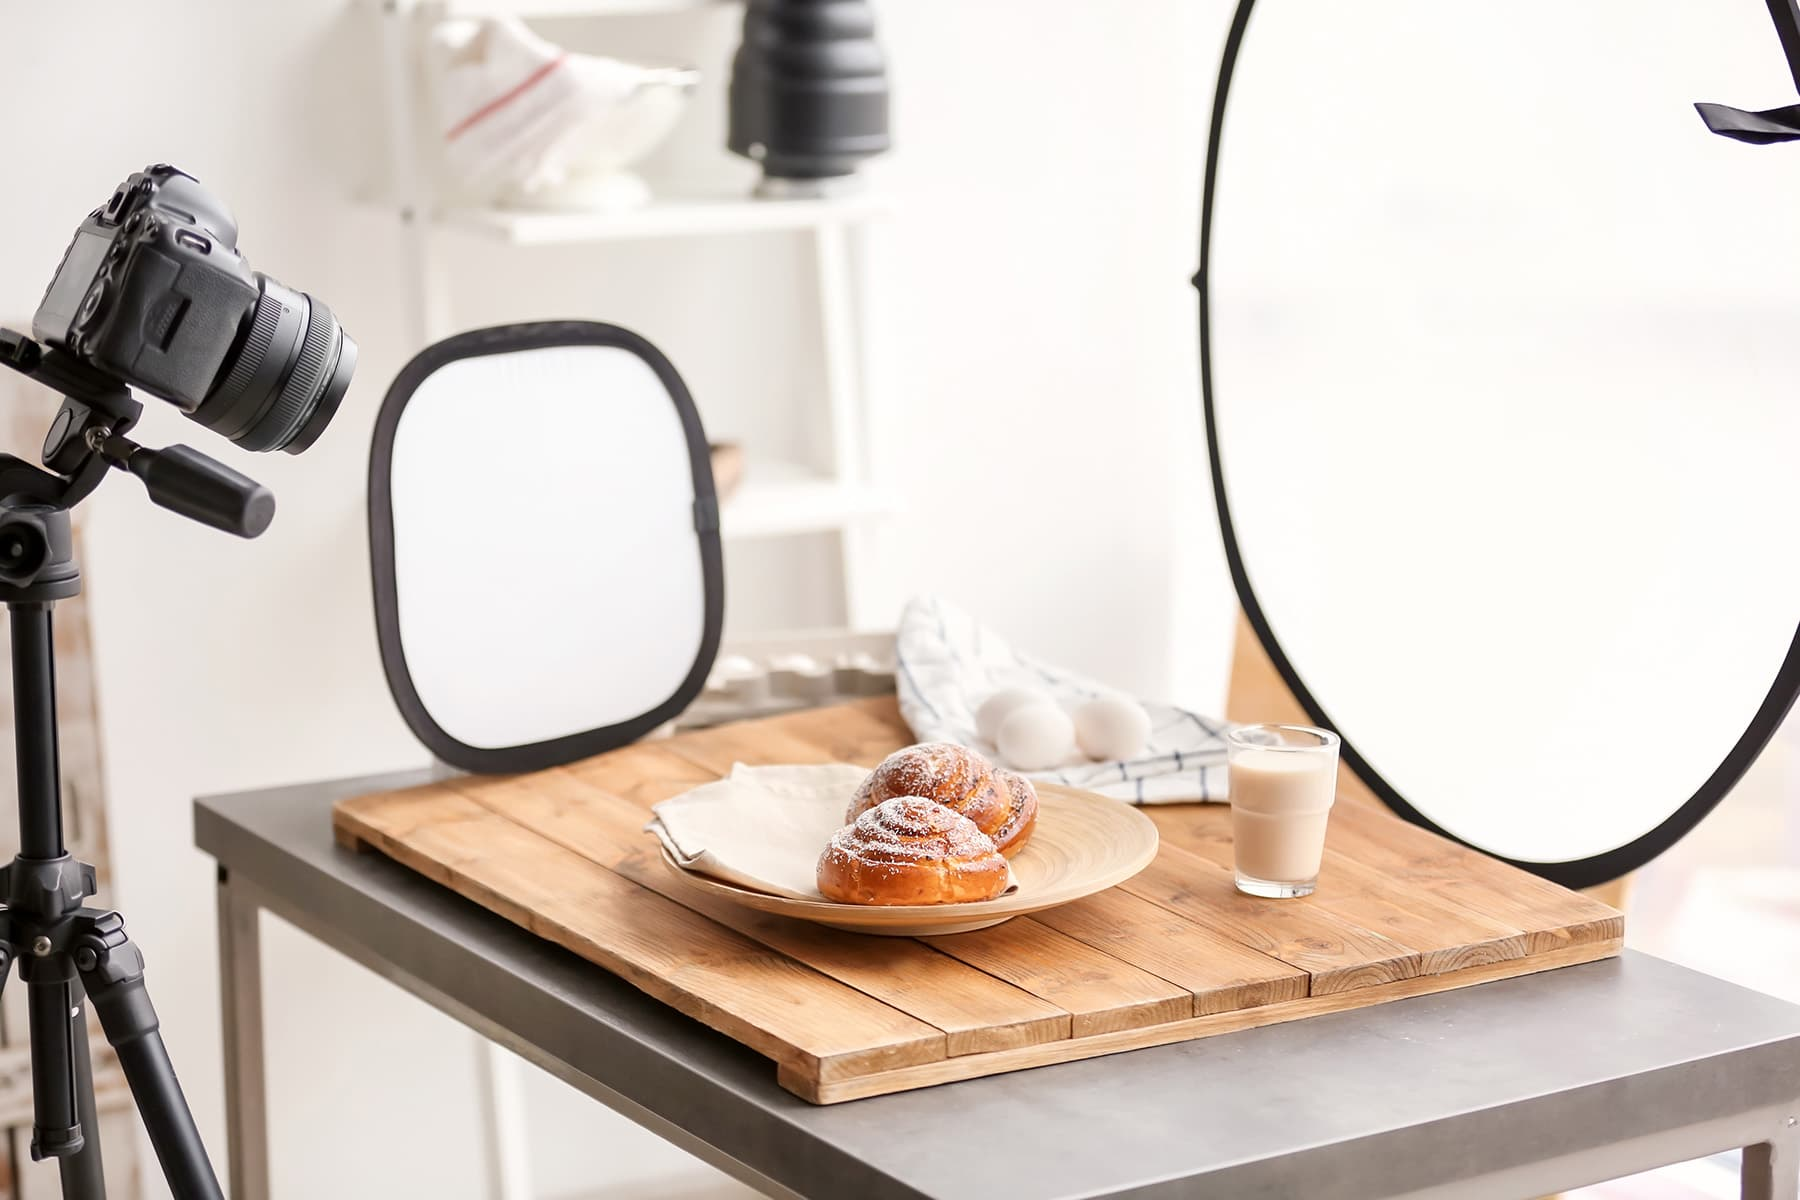 Photographing Food Basic Setup with a Tripod Diffuser and Reflector